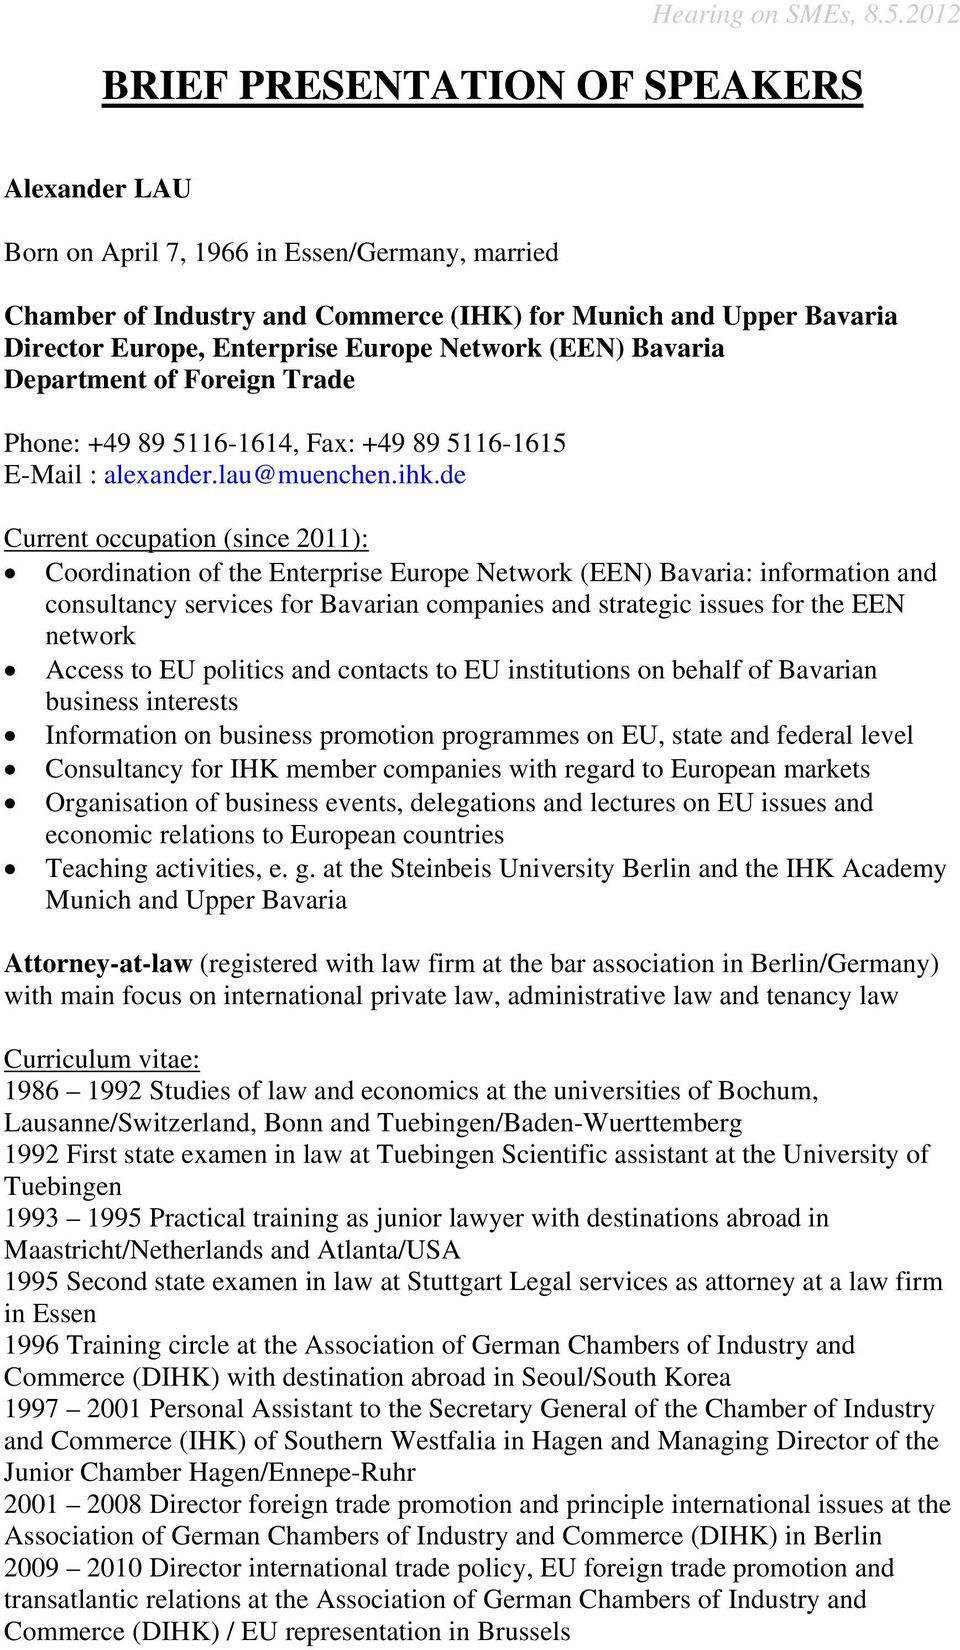 de Current occupation (since 2011): Coordination of the Enterprise Europe Network (EEN) Bavaria: information and consultancy services for Bavarian companies and strategic issues for the EEN network